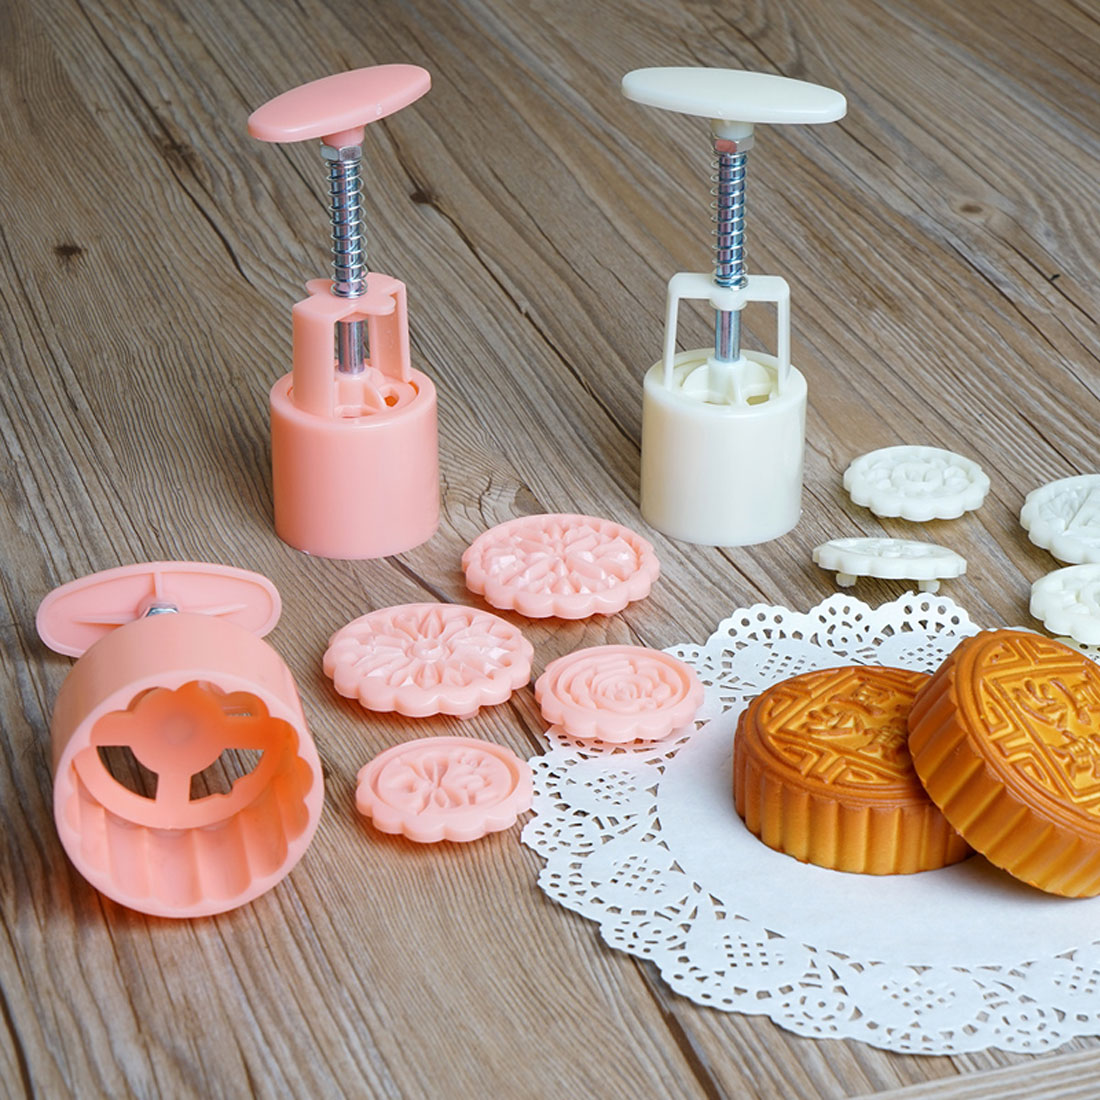 Home Bakery Kitchenware Plastic Biscuit Moon Cake Pastry Mold Cutter Set 11 in 1 - image 3 of 5